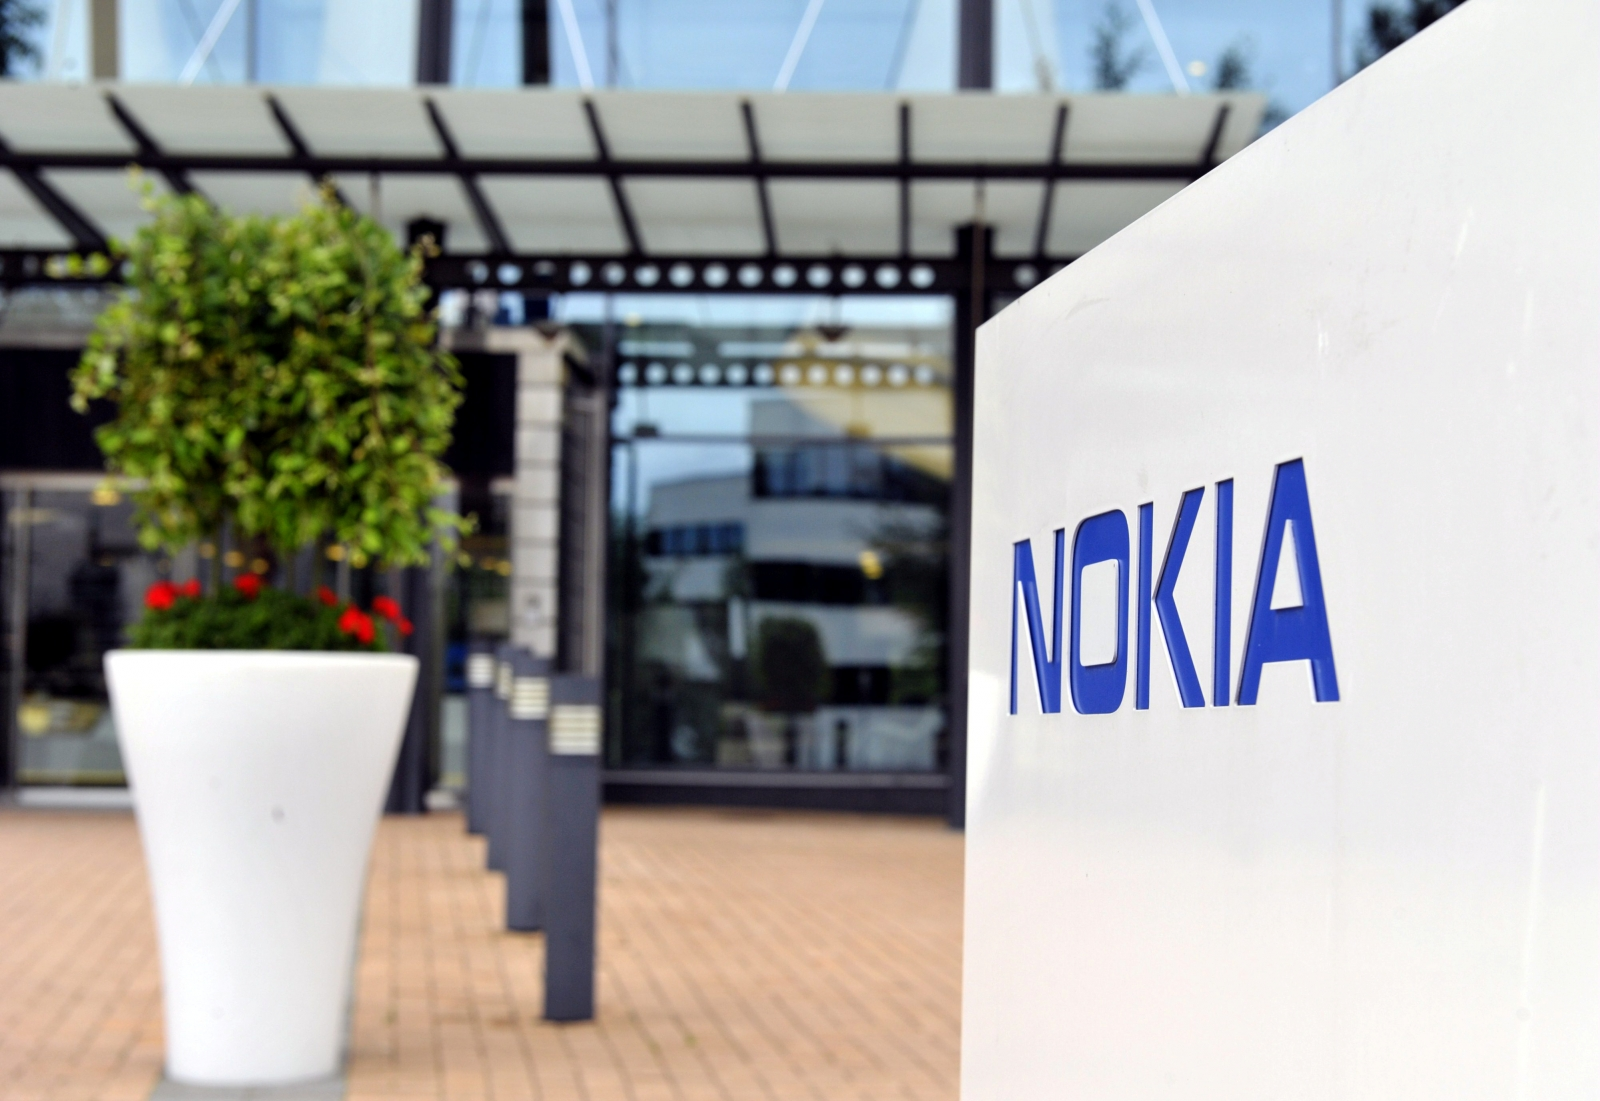 Nokia D1C tablet appears in GFXbench